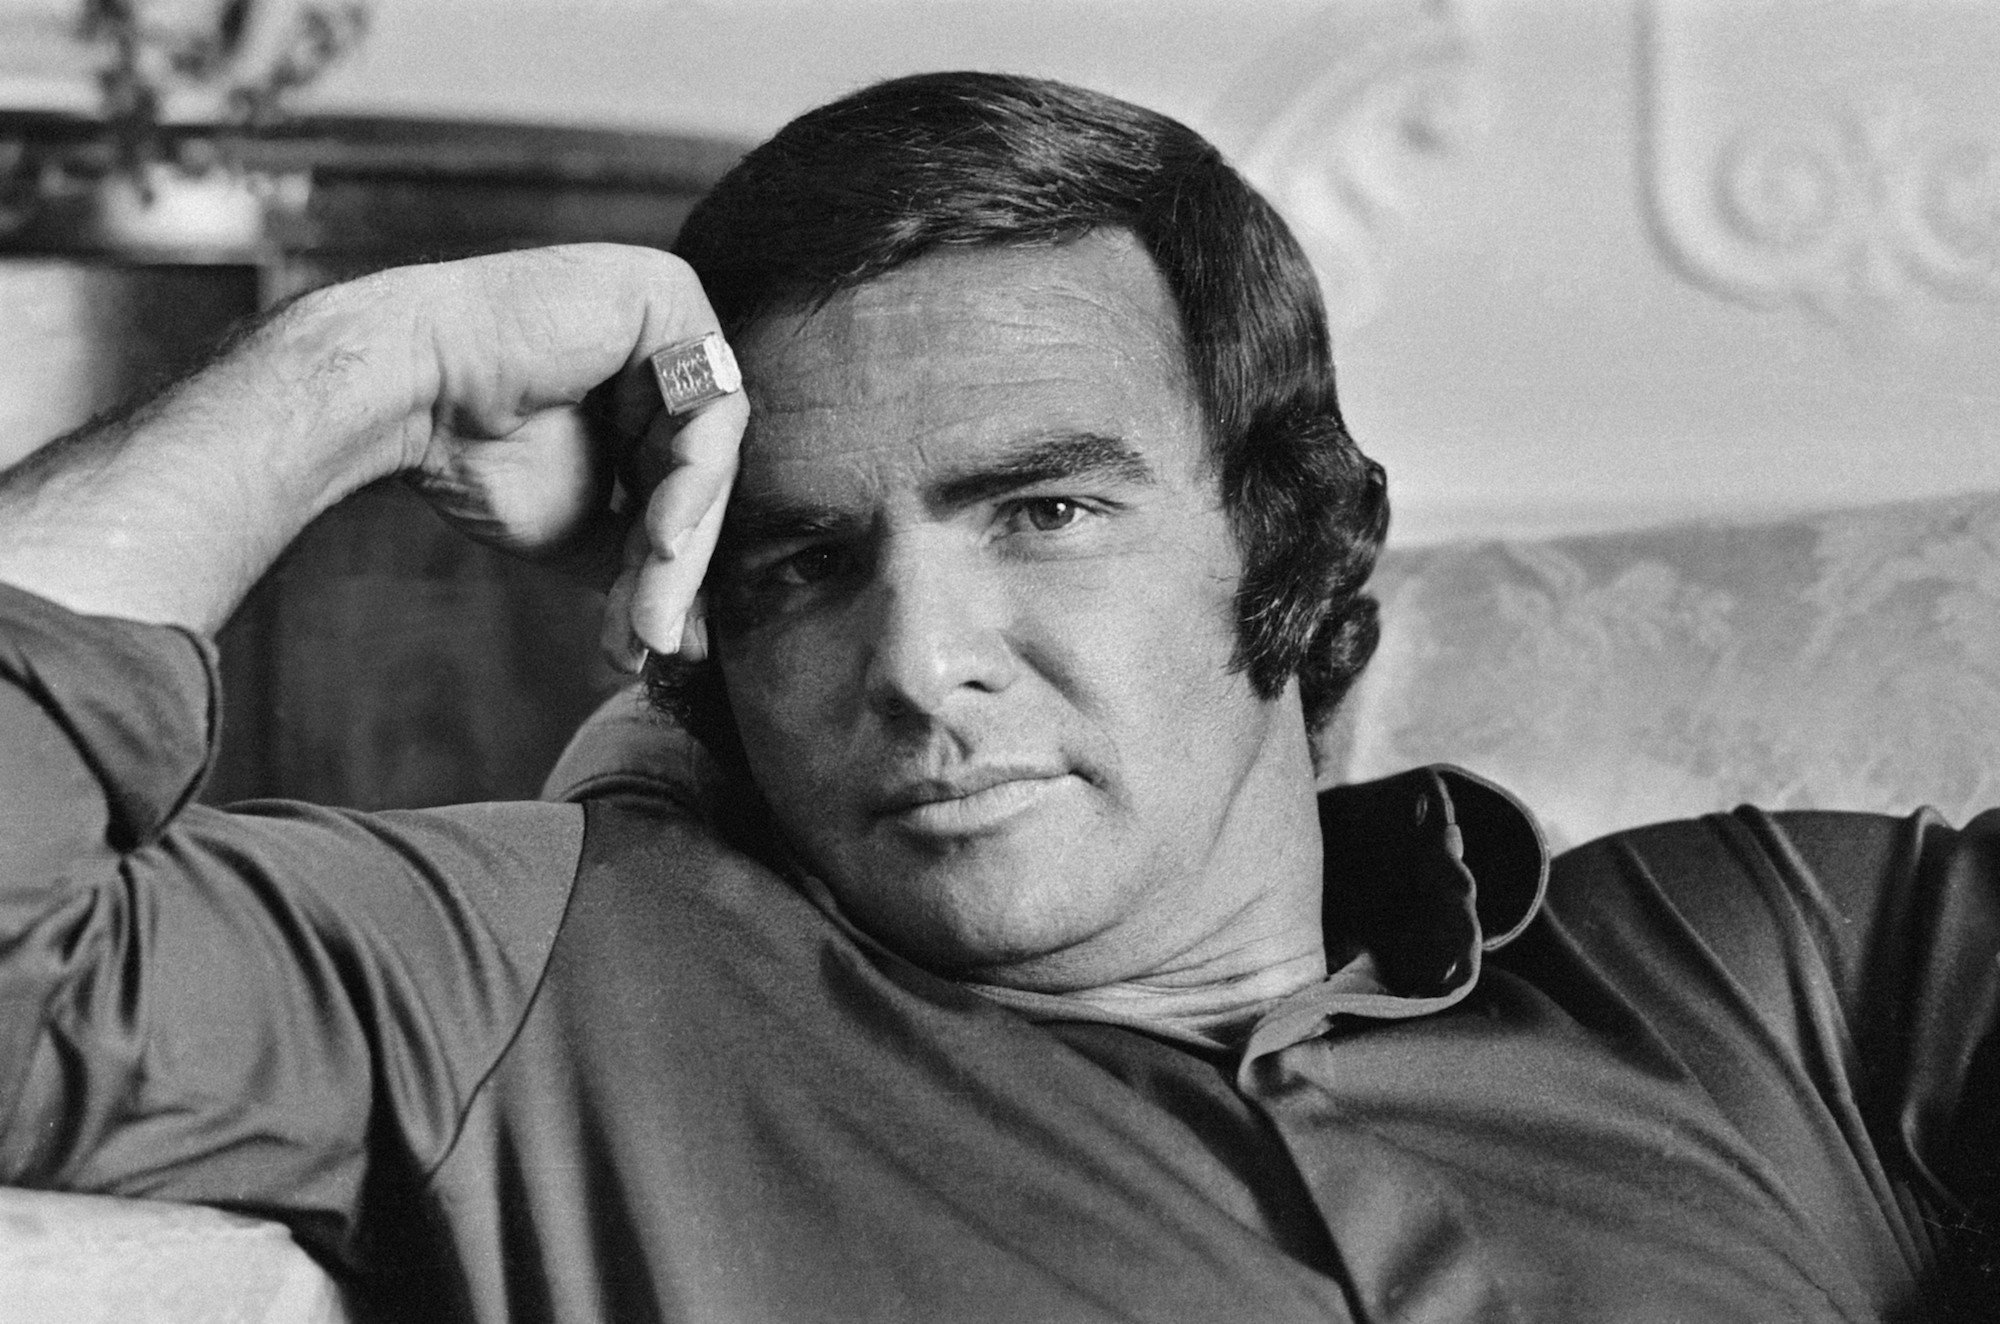 Burt Reynolds in 1972